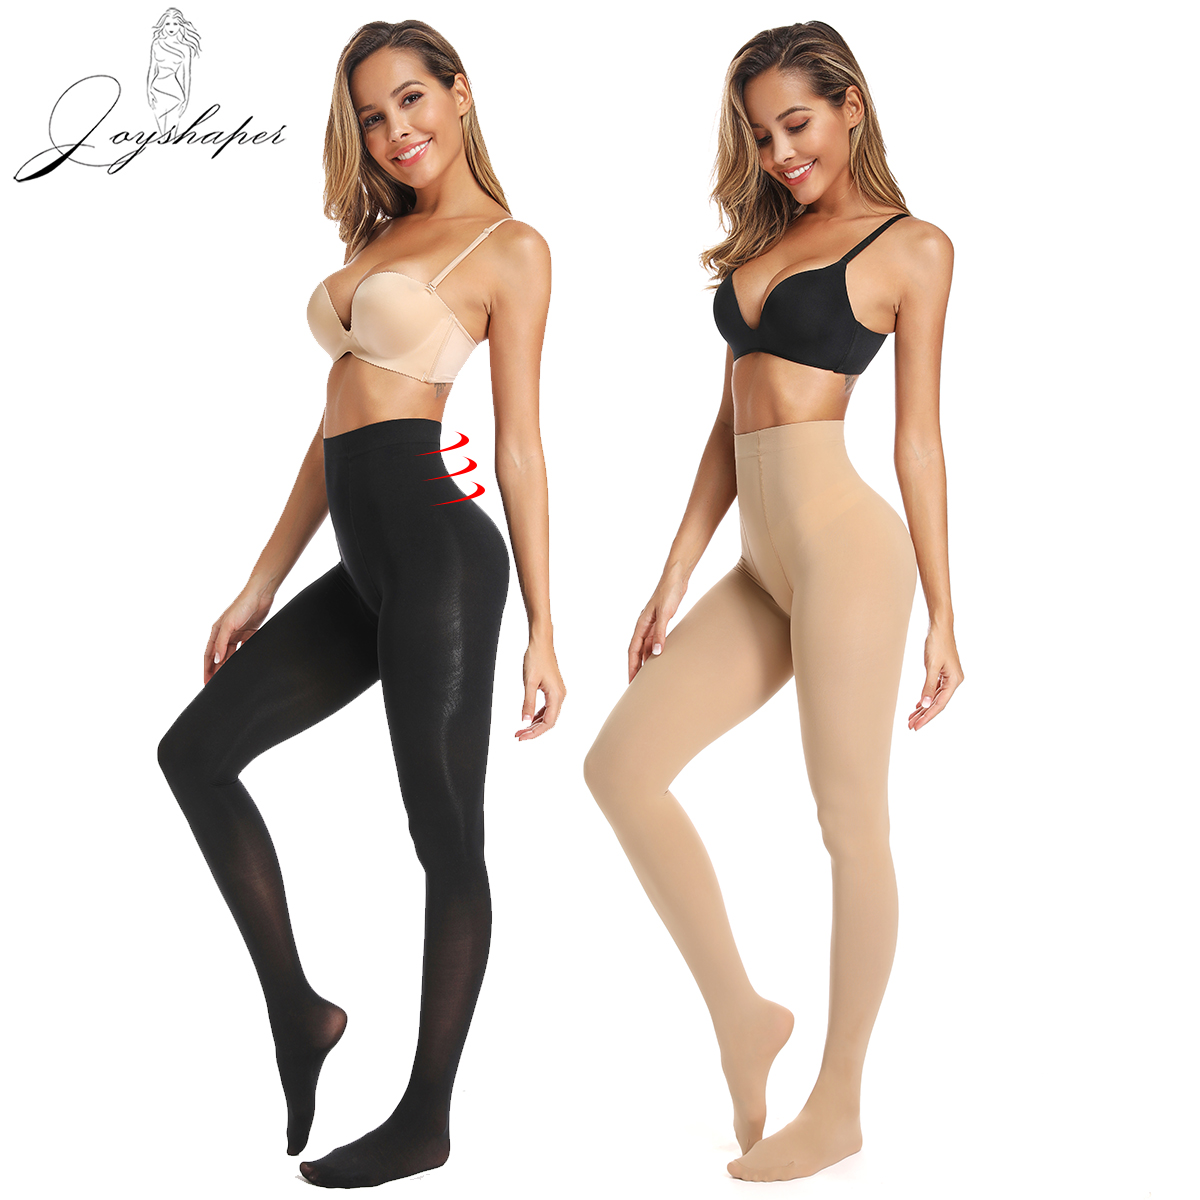 Sexy Lingerie Stockings Pantyhose Women Underwear Over Knee Tummy Control Thigh Slimming Shapewear High Hosiery Opaque Tights